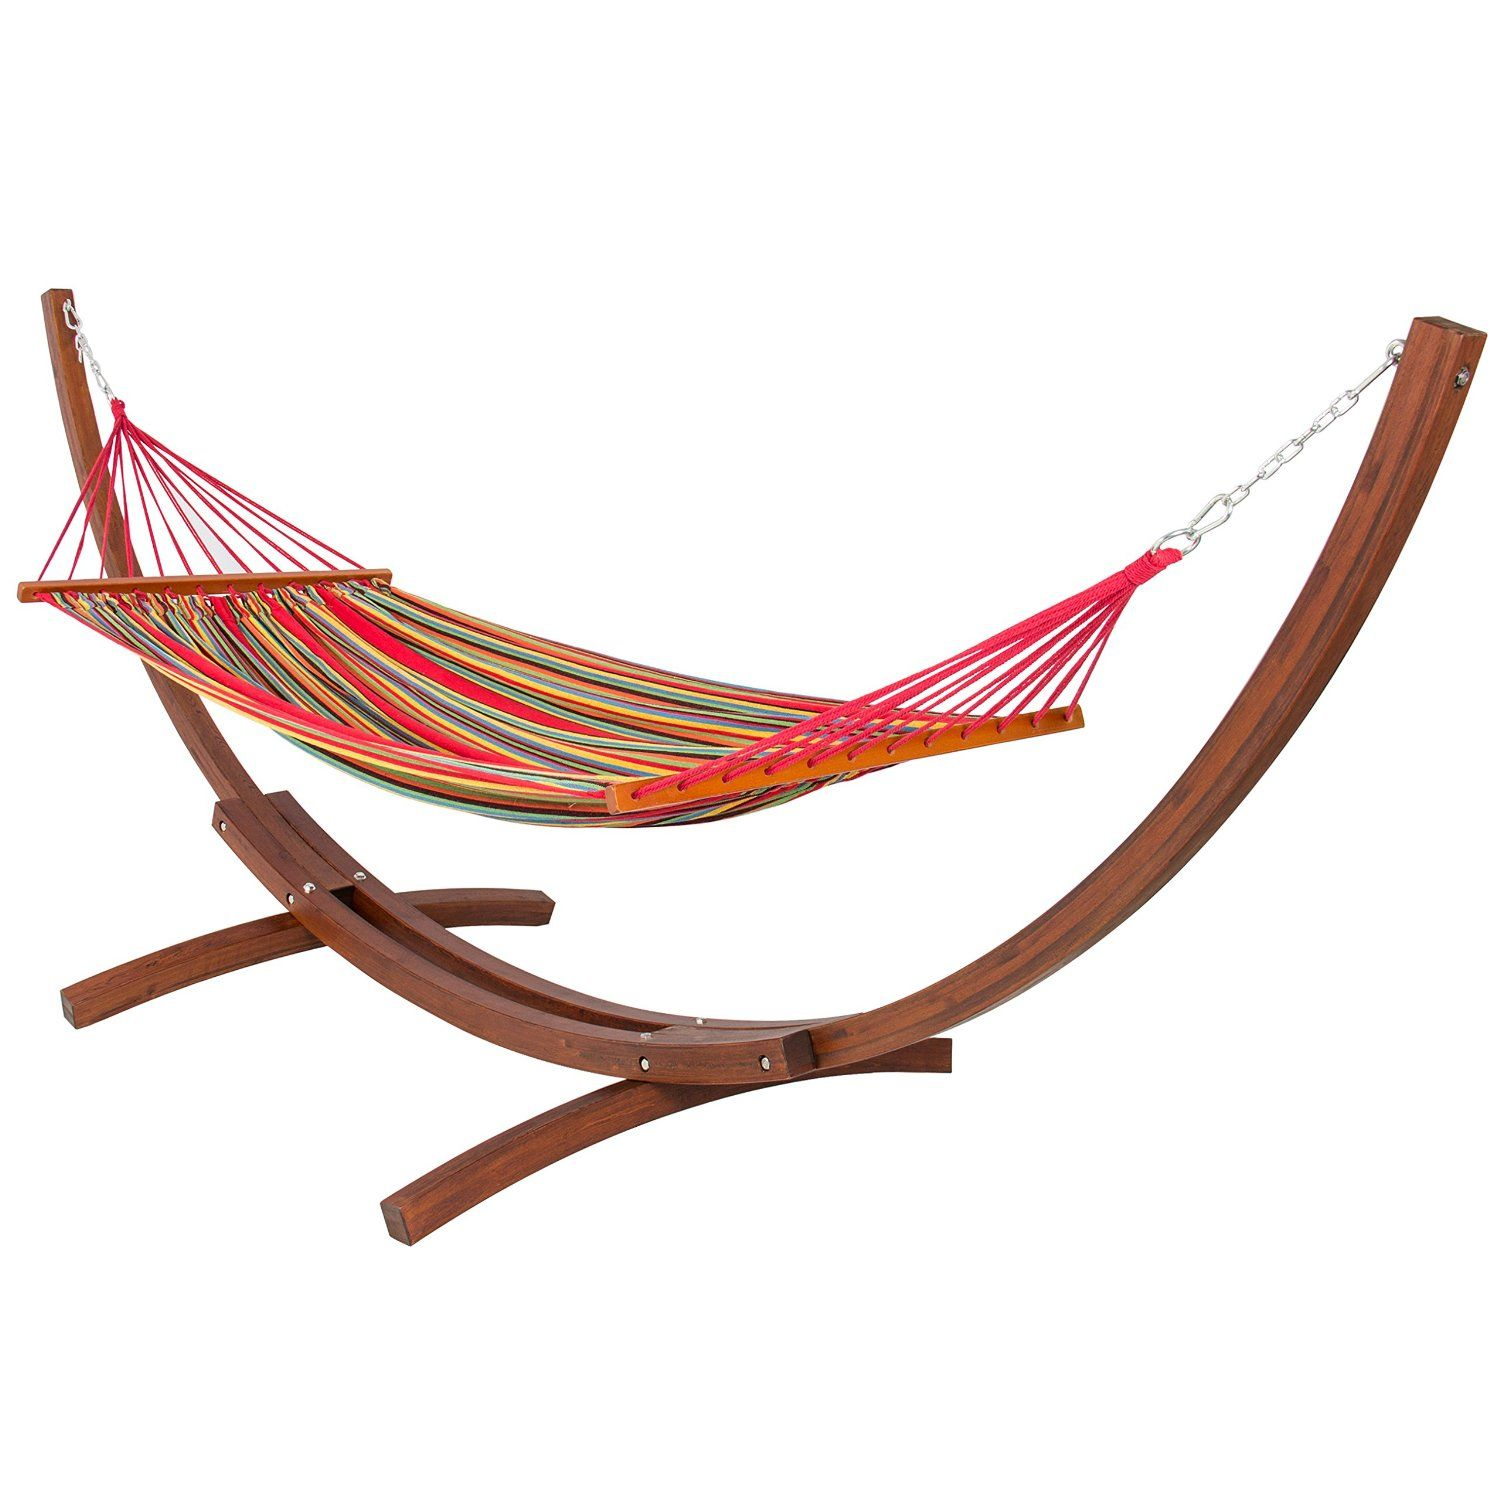 Cool stuff to get on hammock stand outdoor gardens and patios